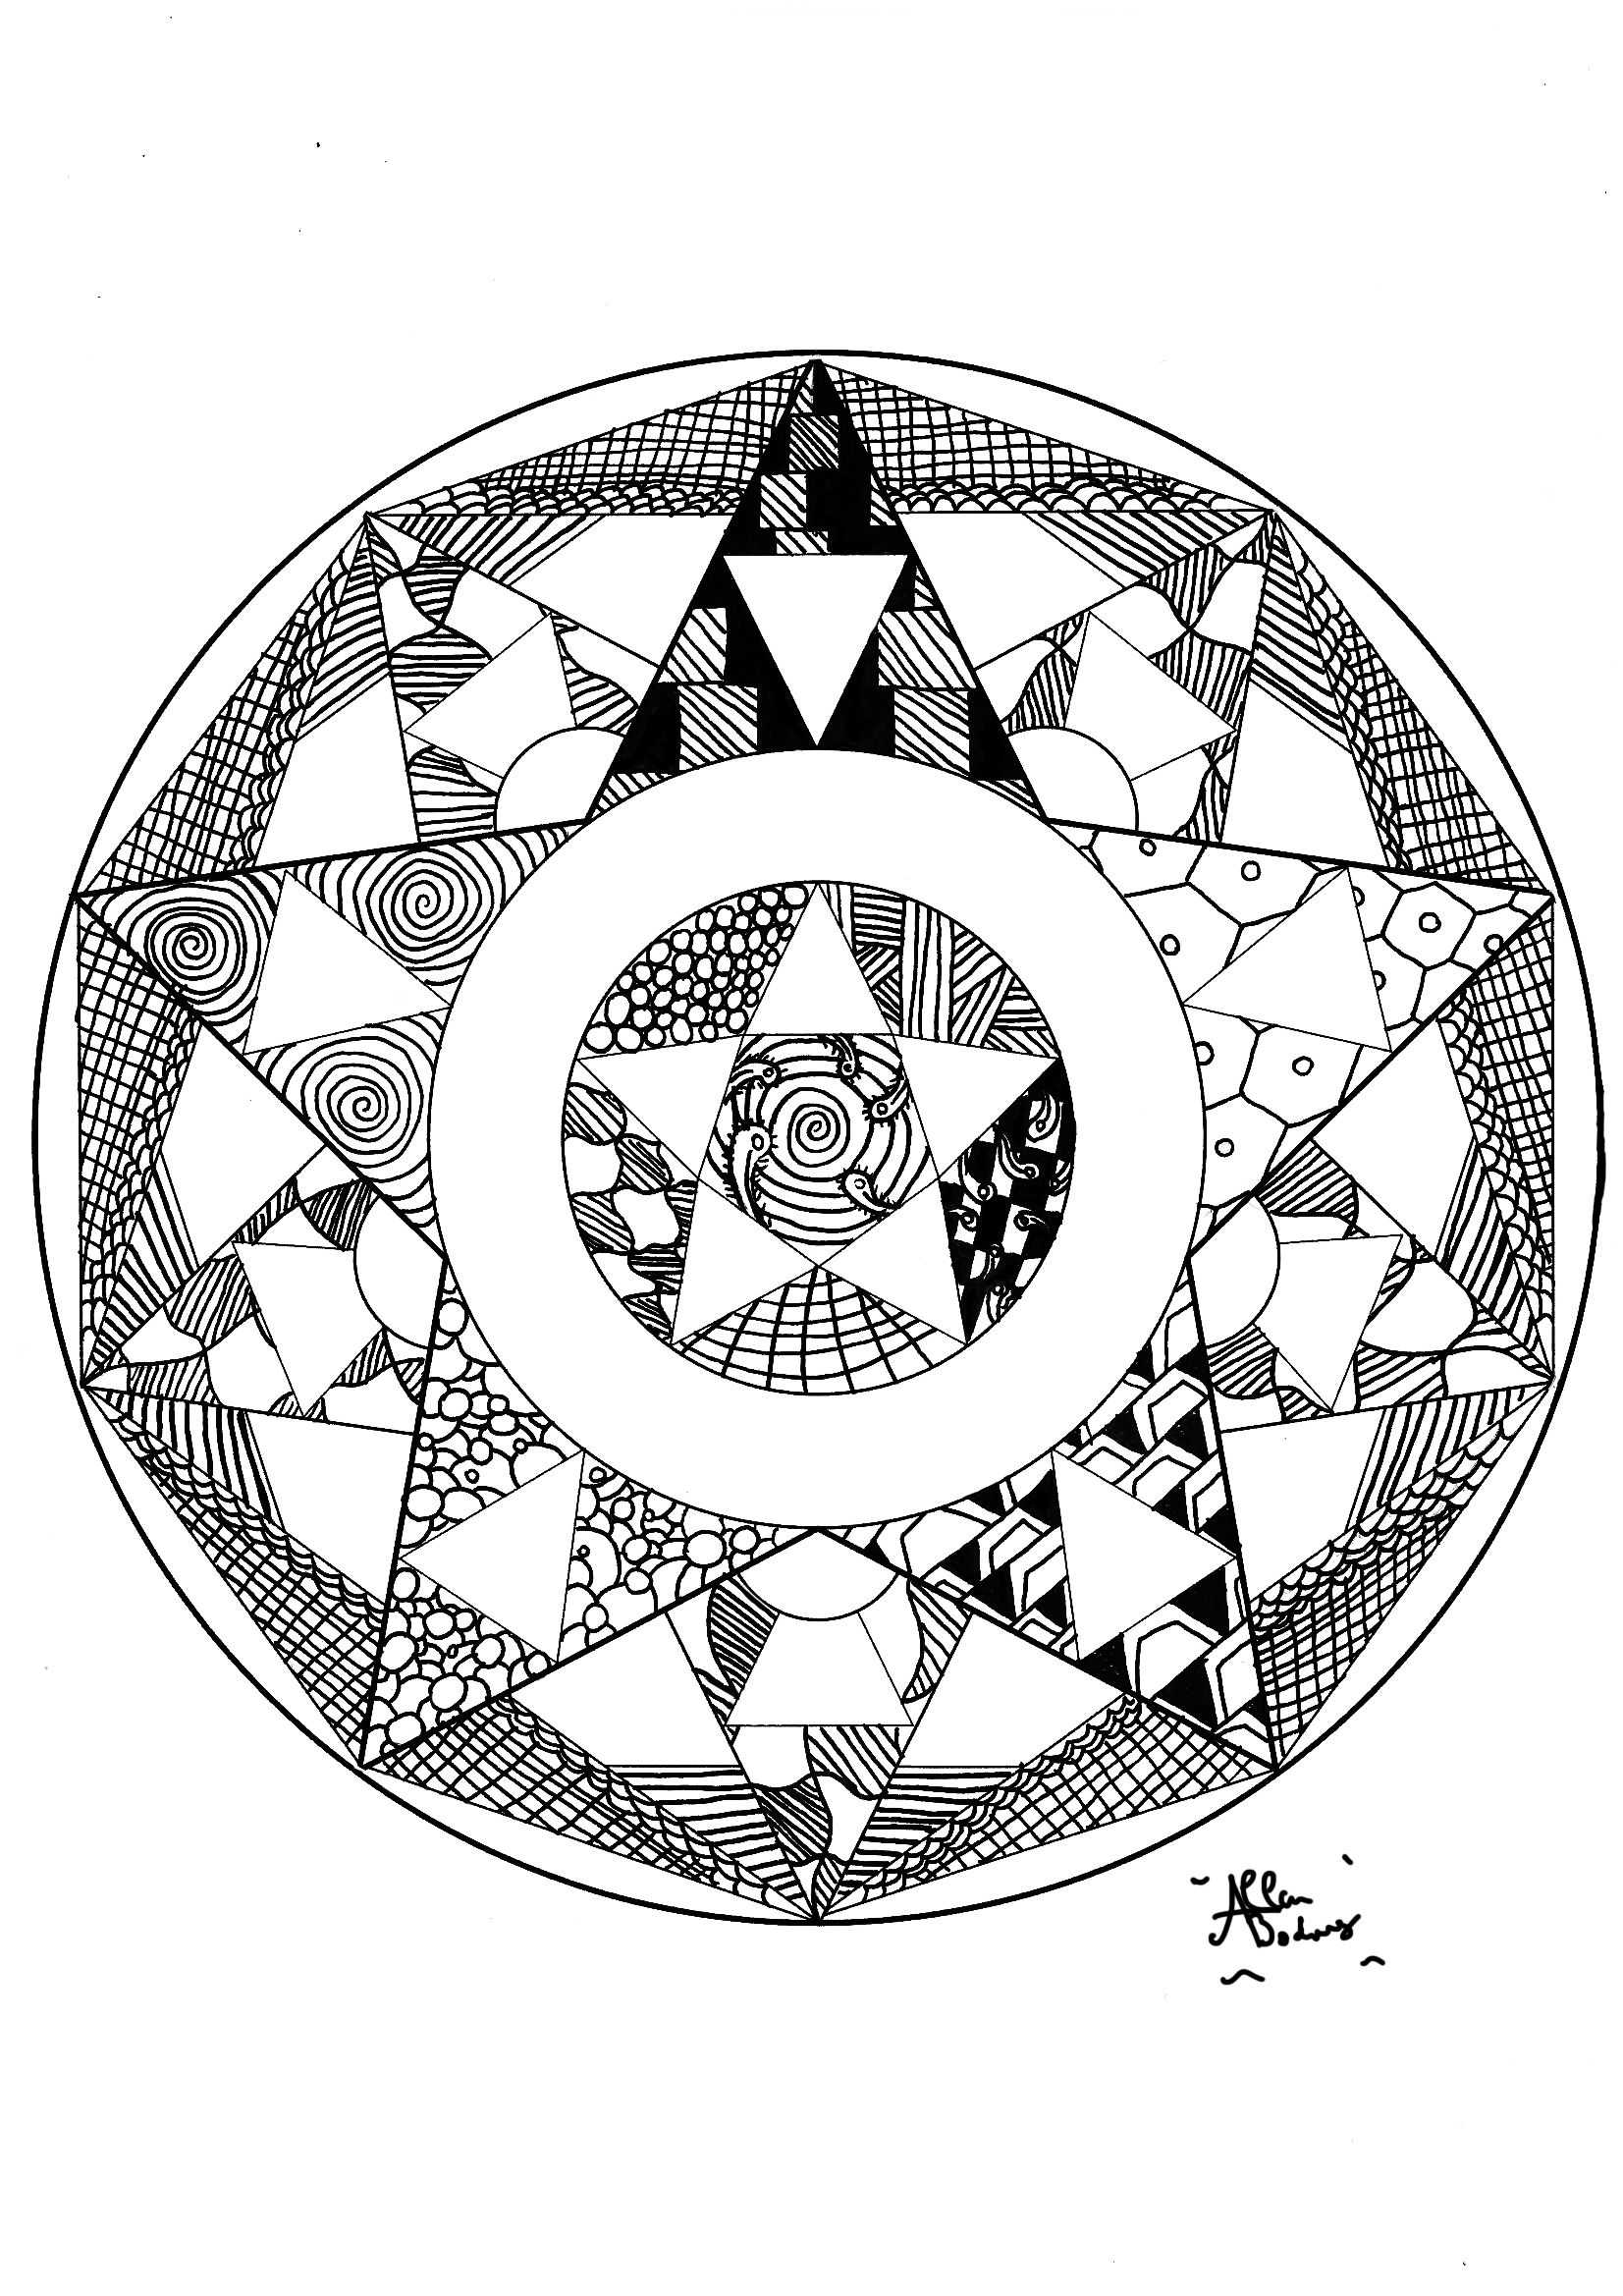 Ordinaire Coloring Page Adults Mandala Zen Free To Print